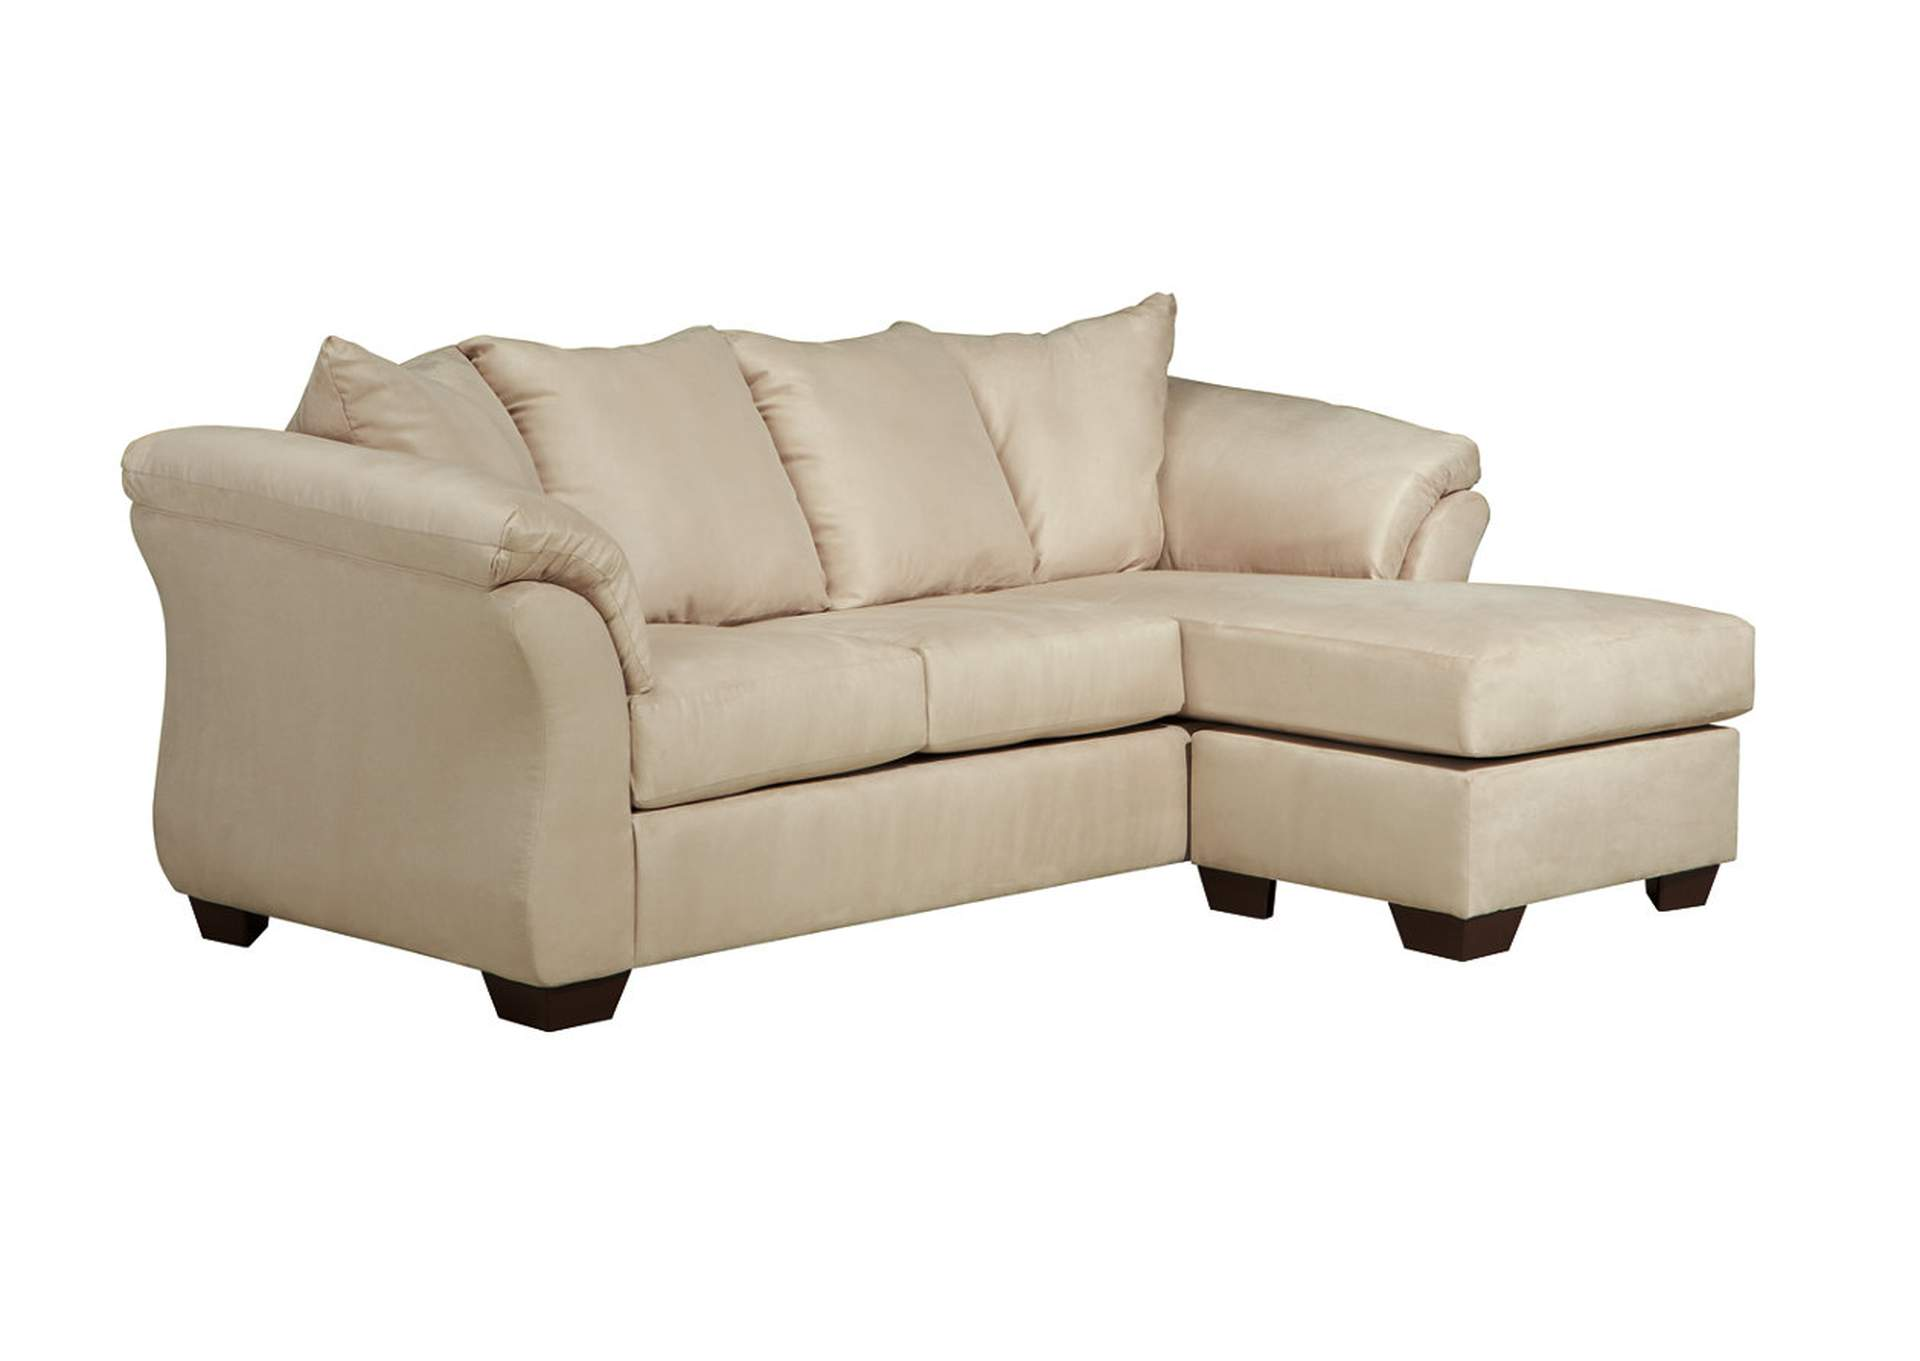 Major discount furniture darcy stone sofa chaise for Affordable chaise sofas